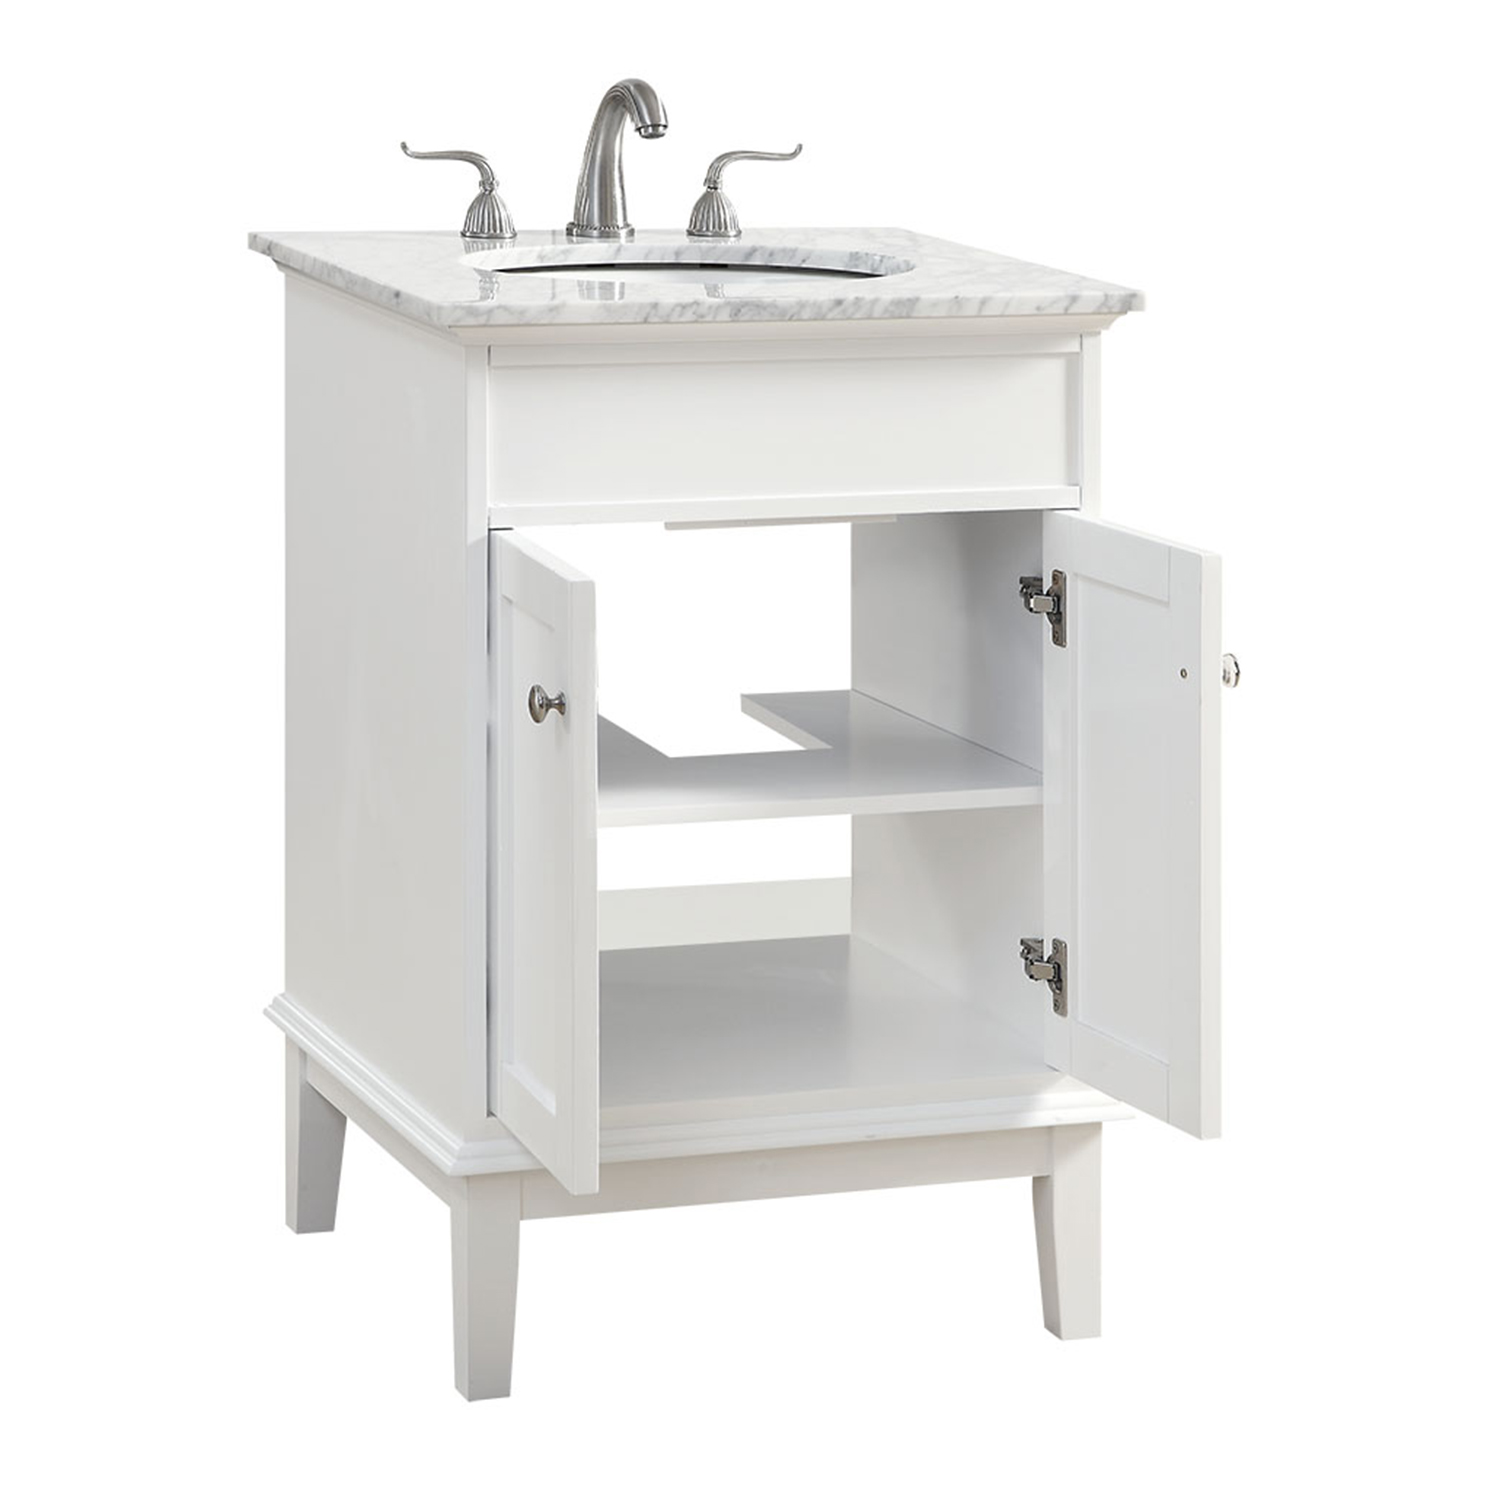 24 inch Vanity.  What type of piping needed.-1953-vf30124wh_2.jpg